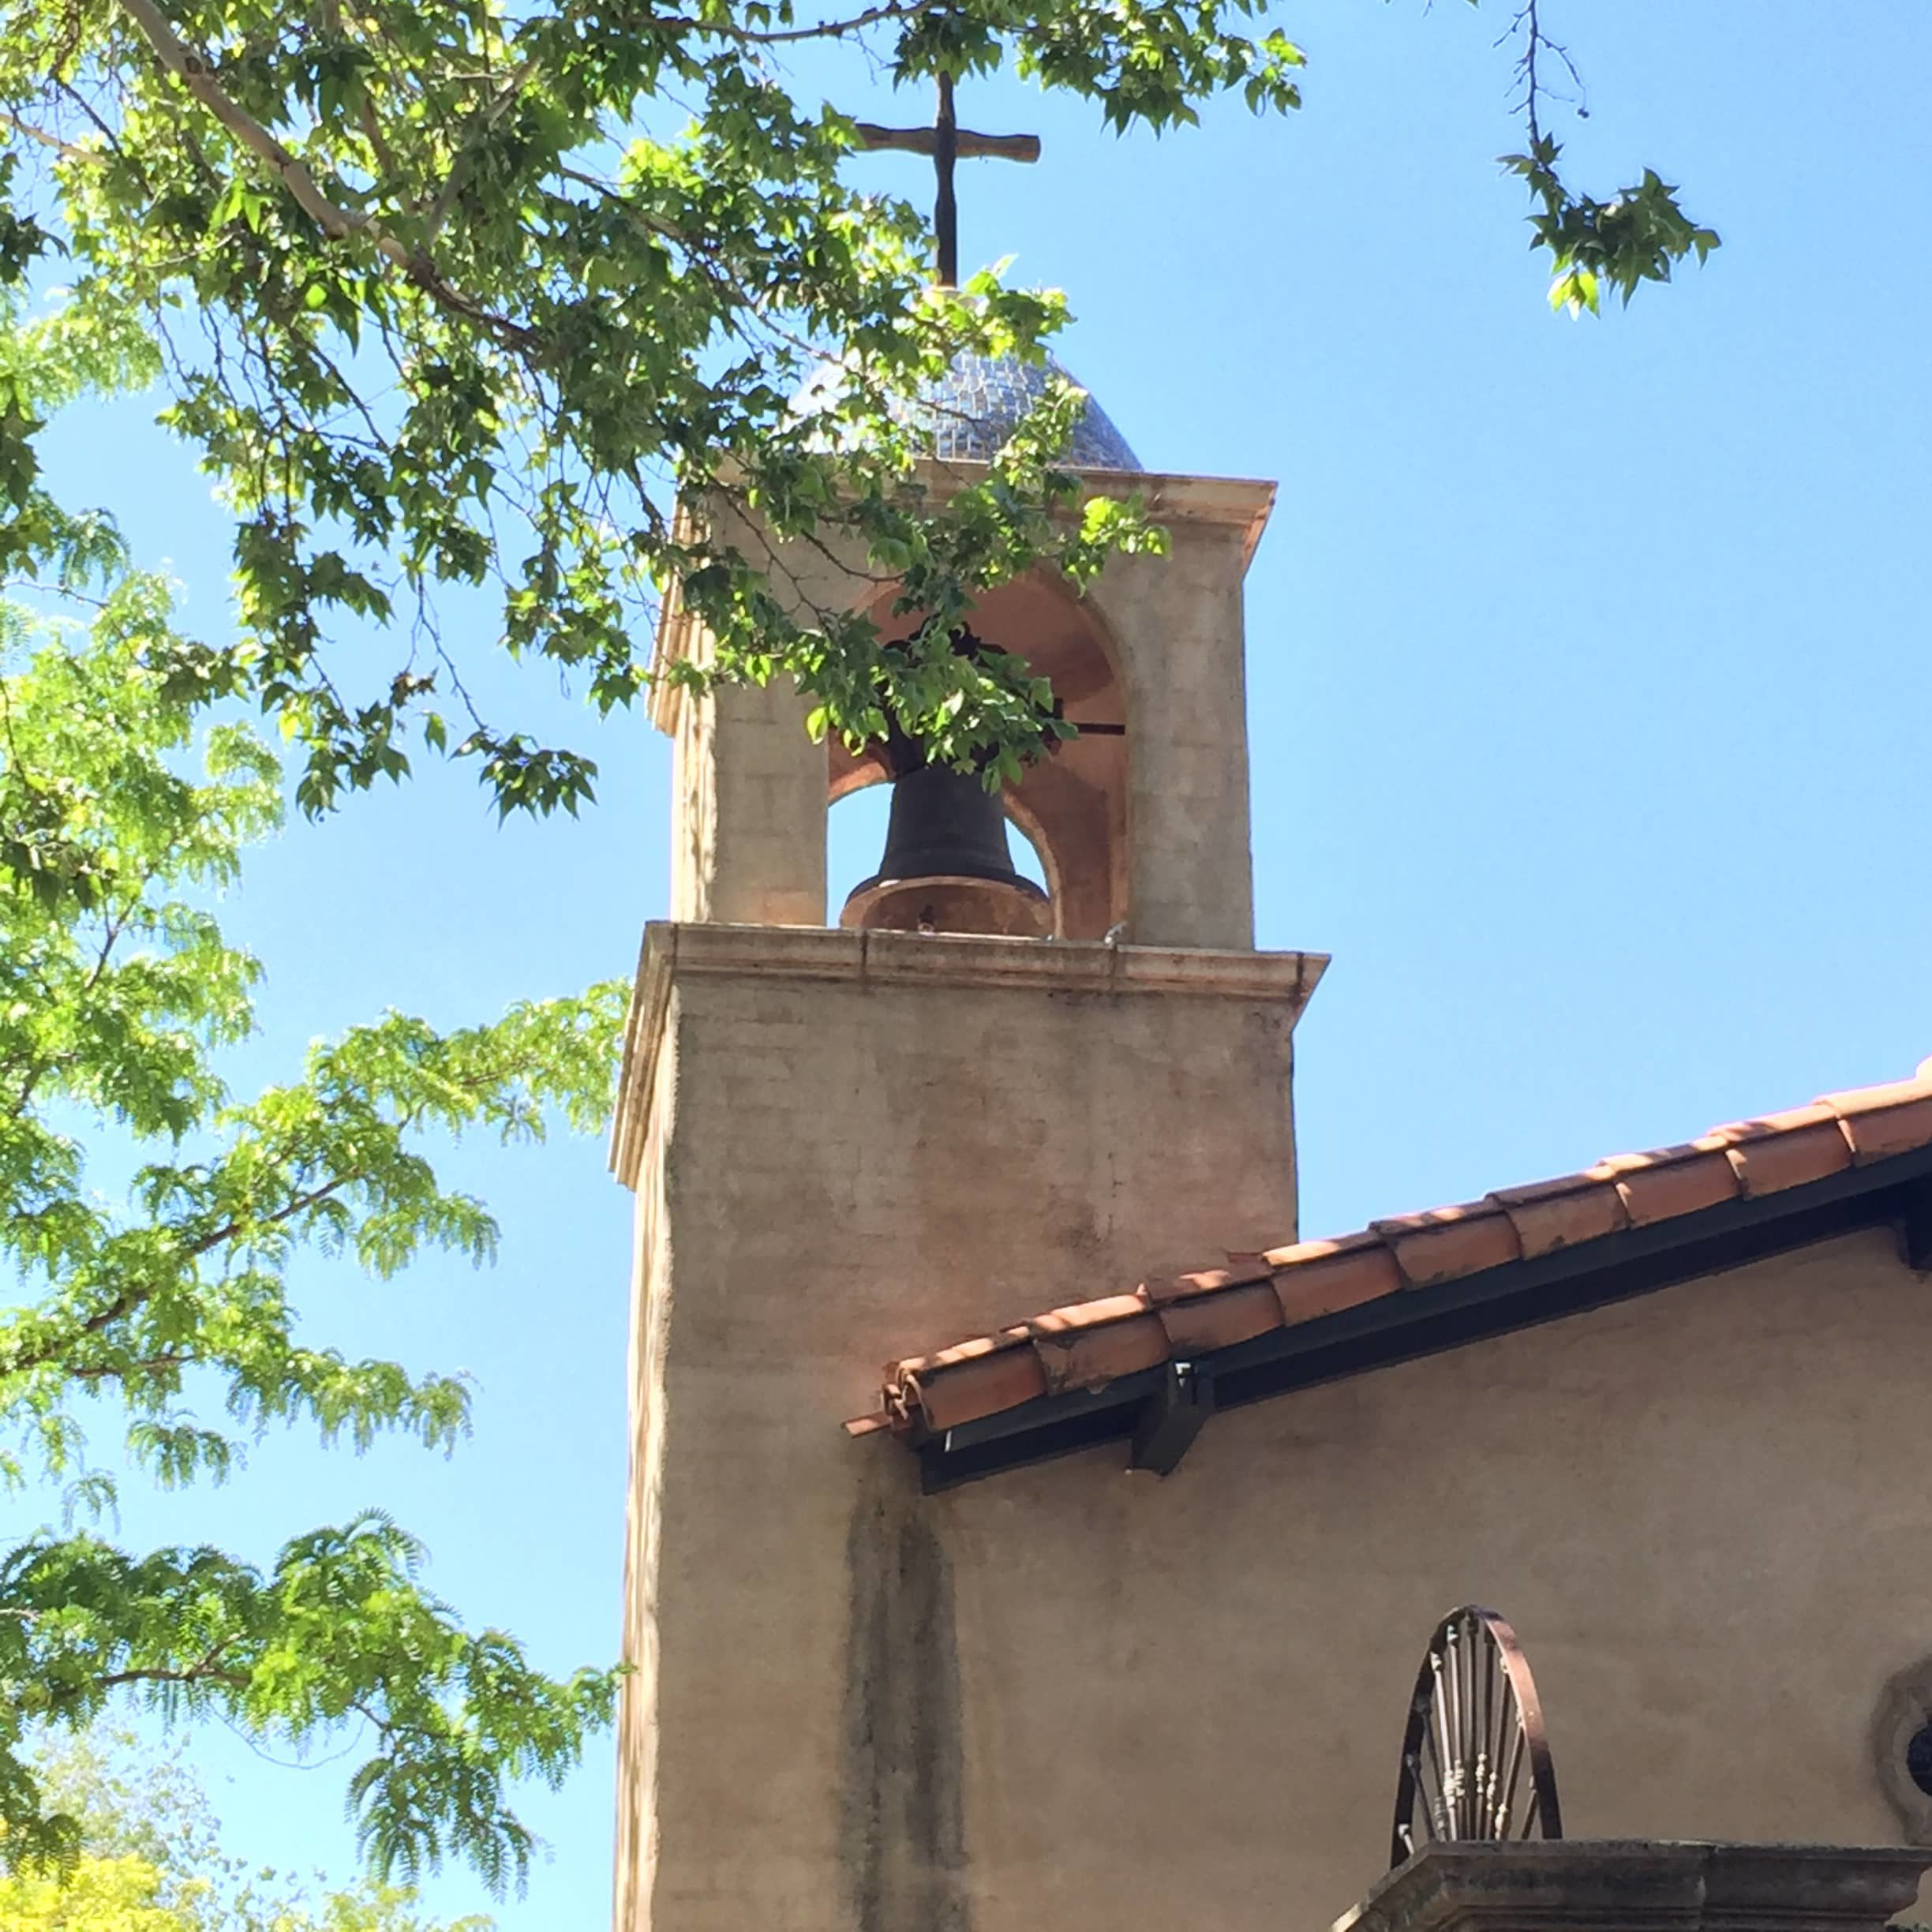 old church with bell and cross